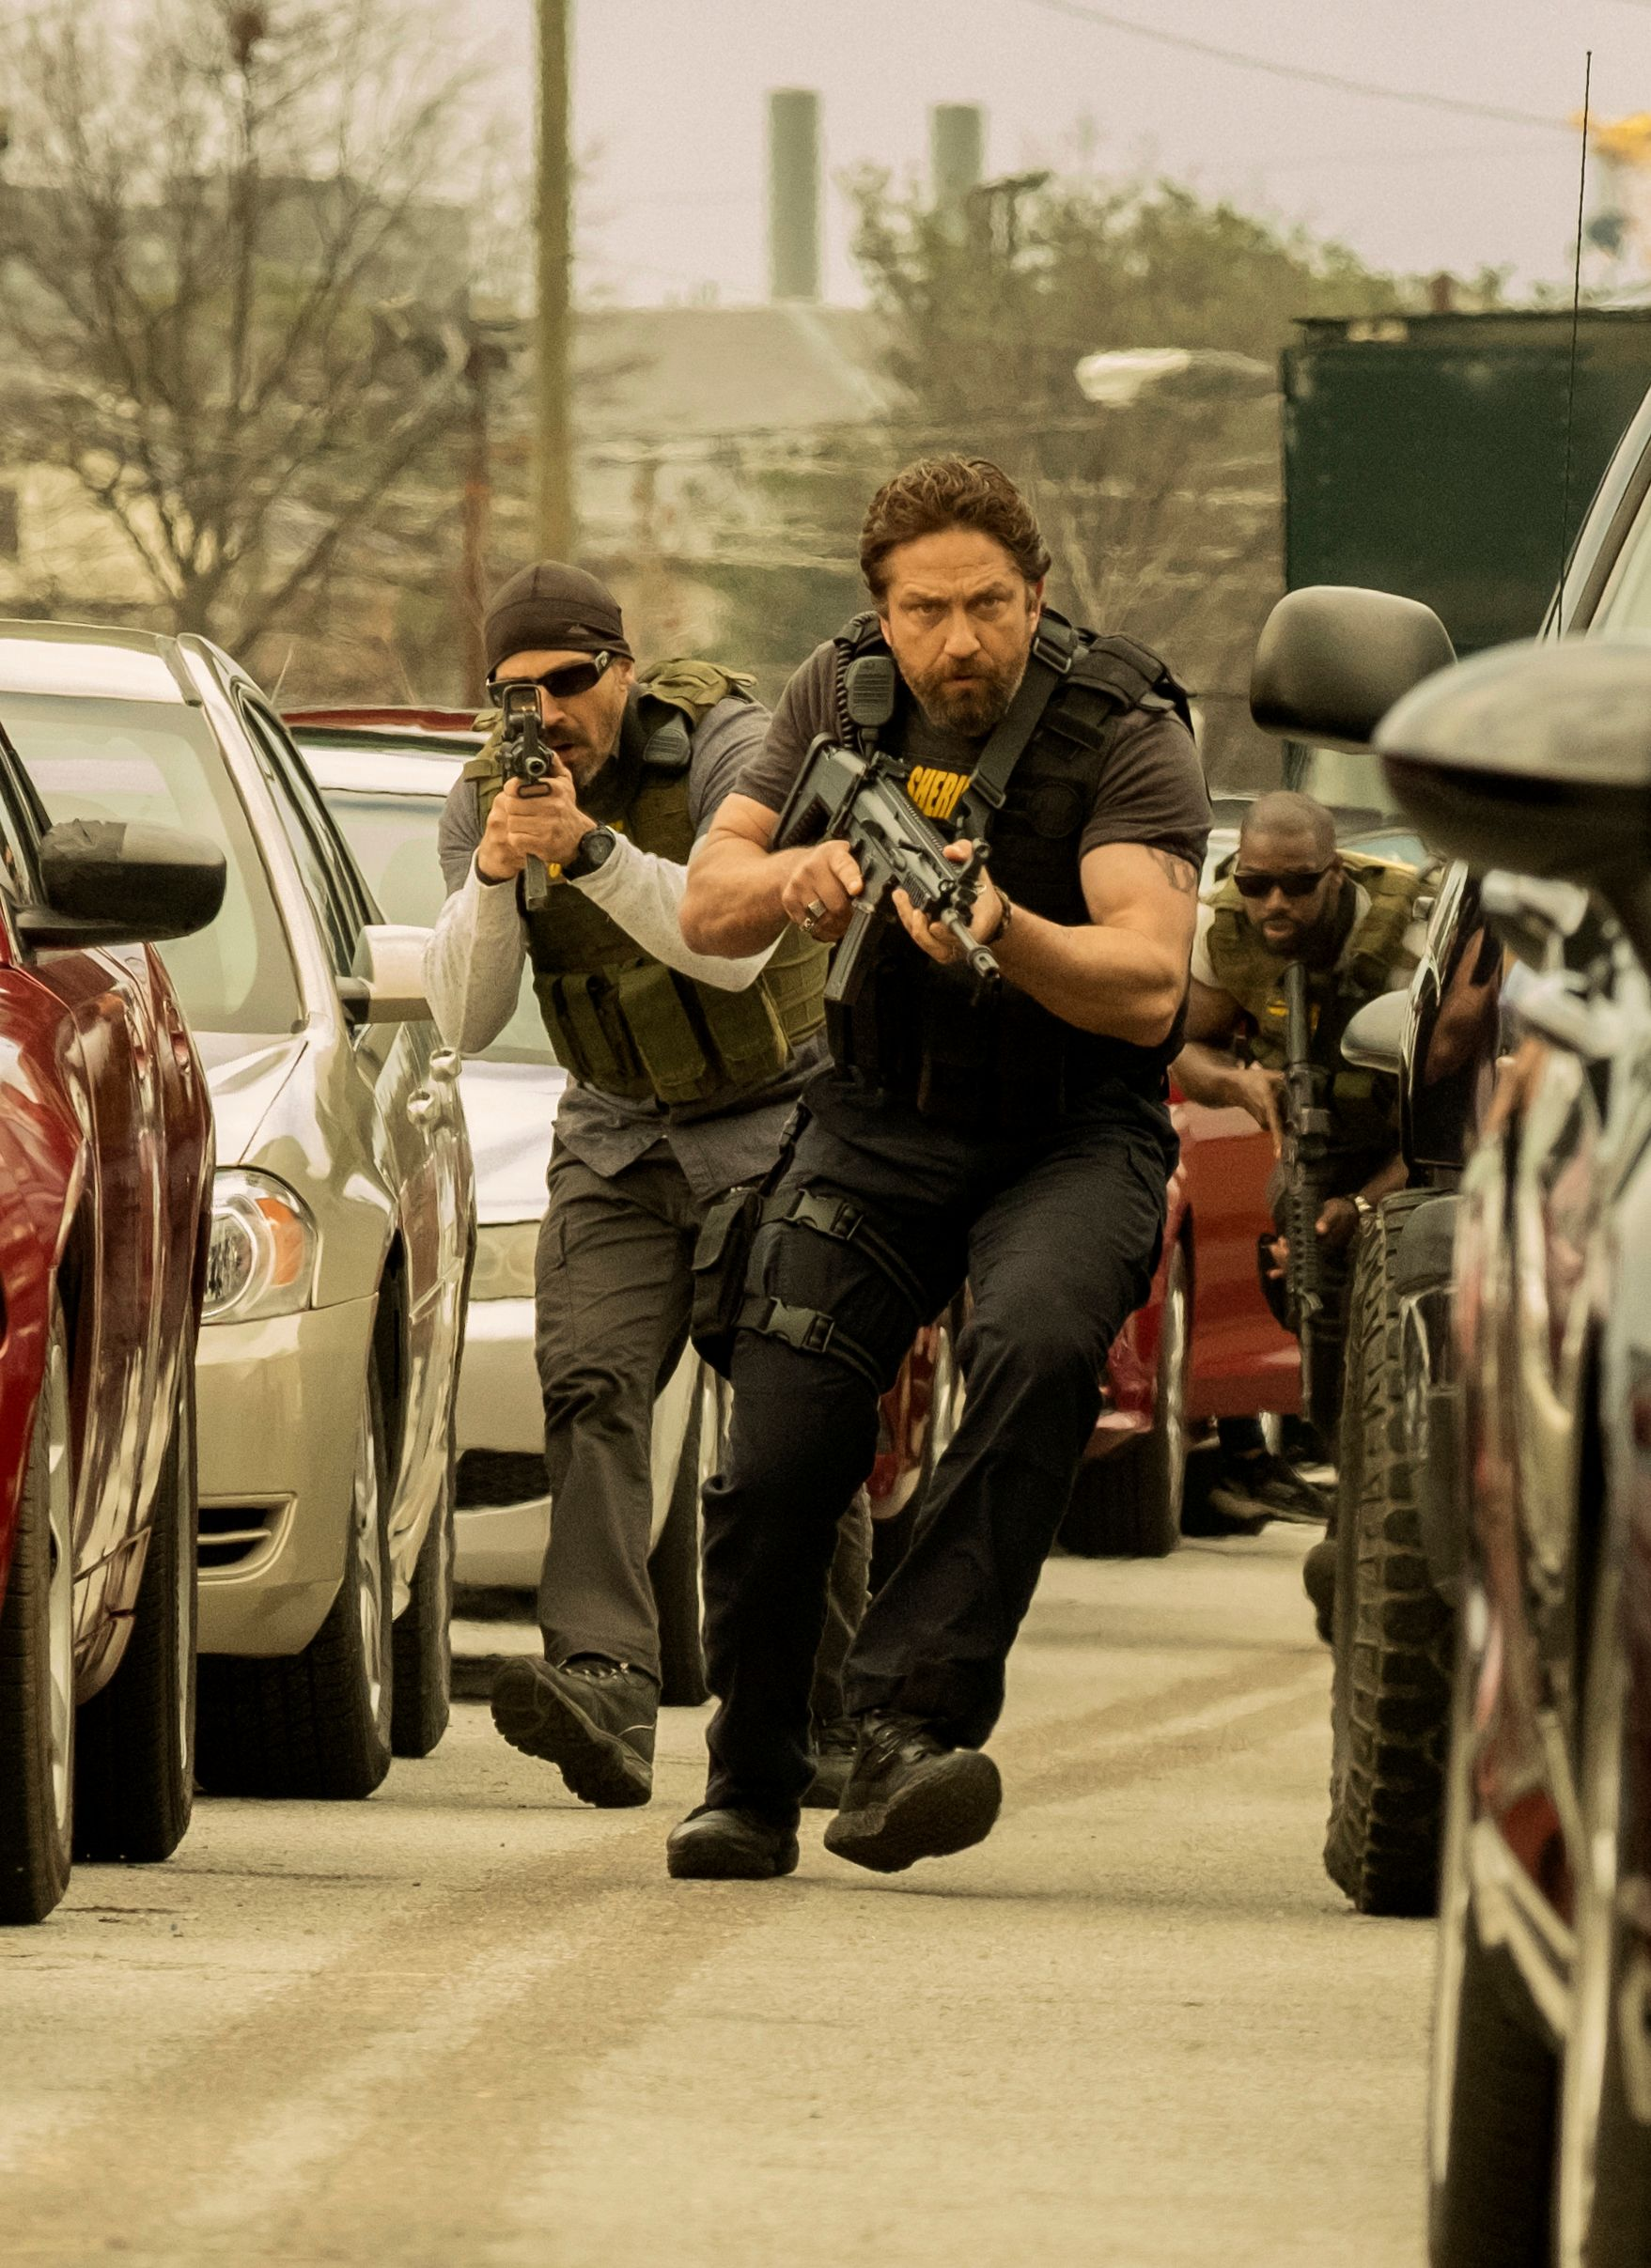 Den of Thieves 2 Is Happening with Gerard Butler | Collider